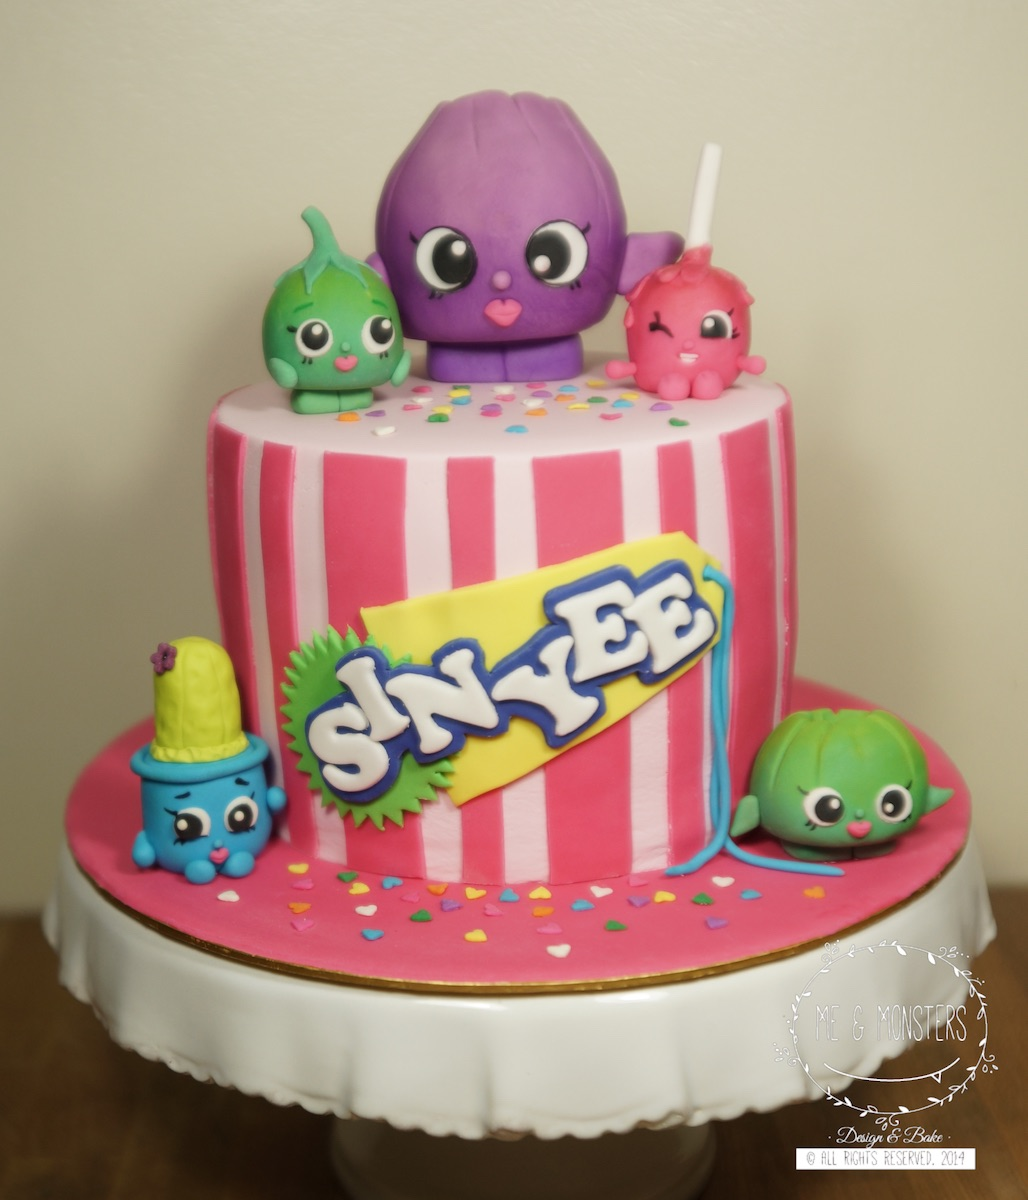 Mini striped shopkins birthday